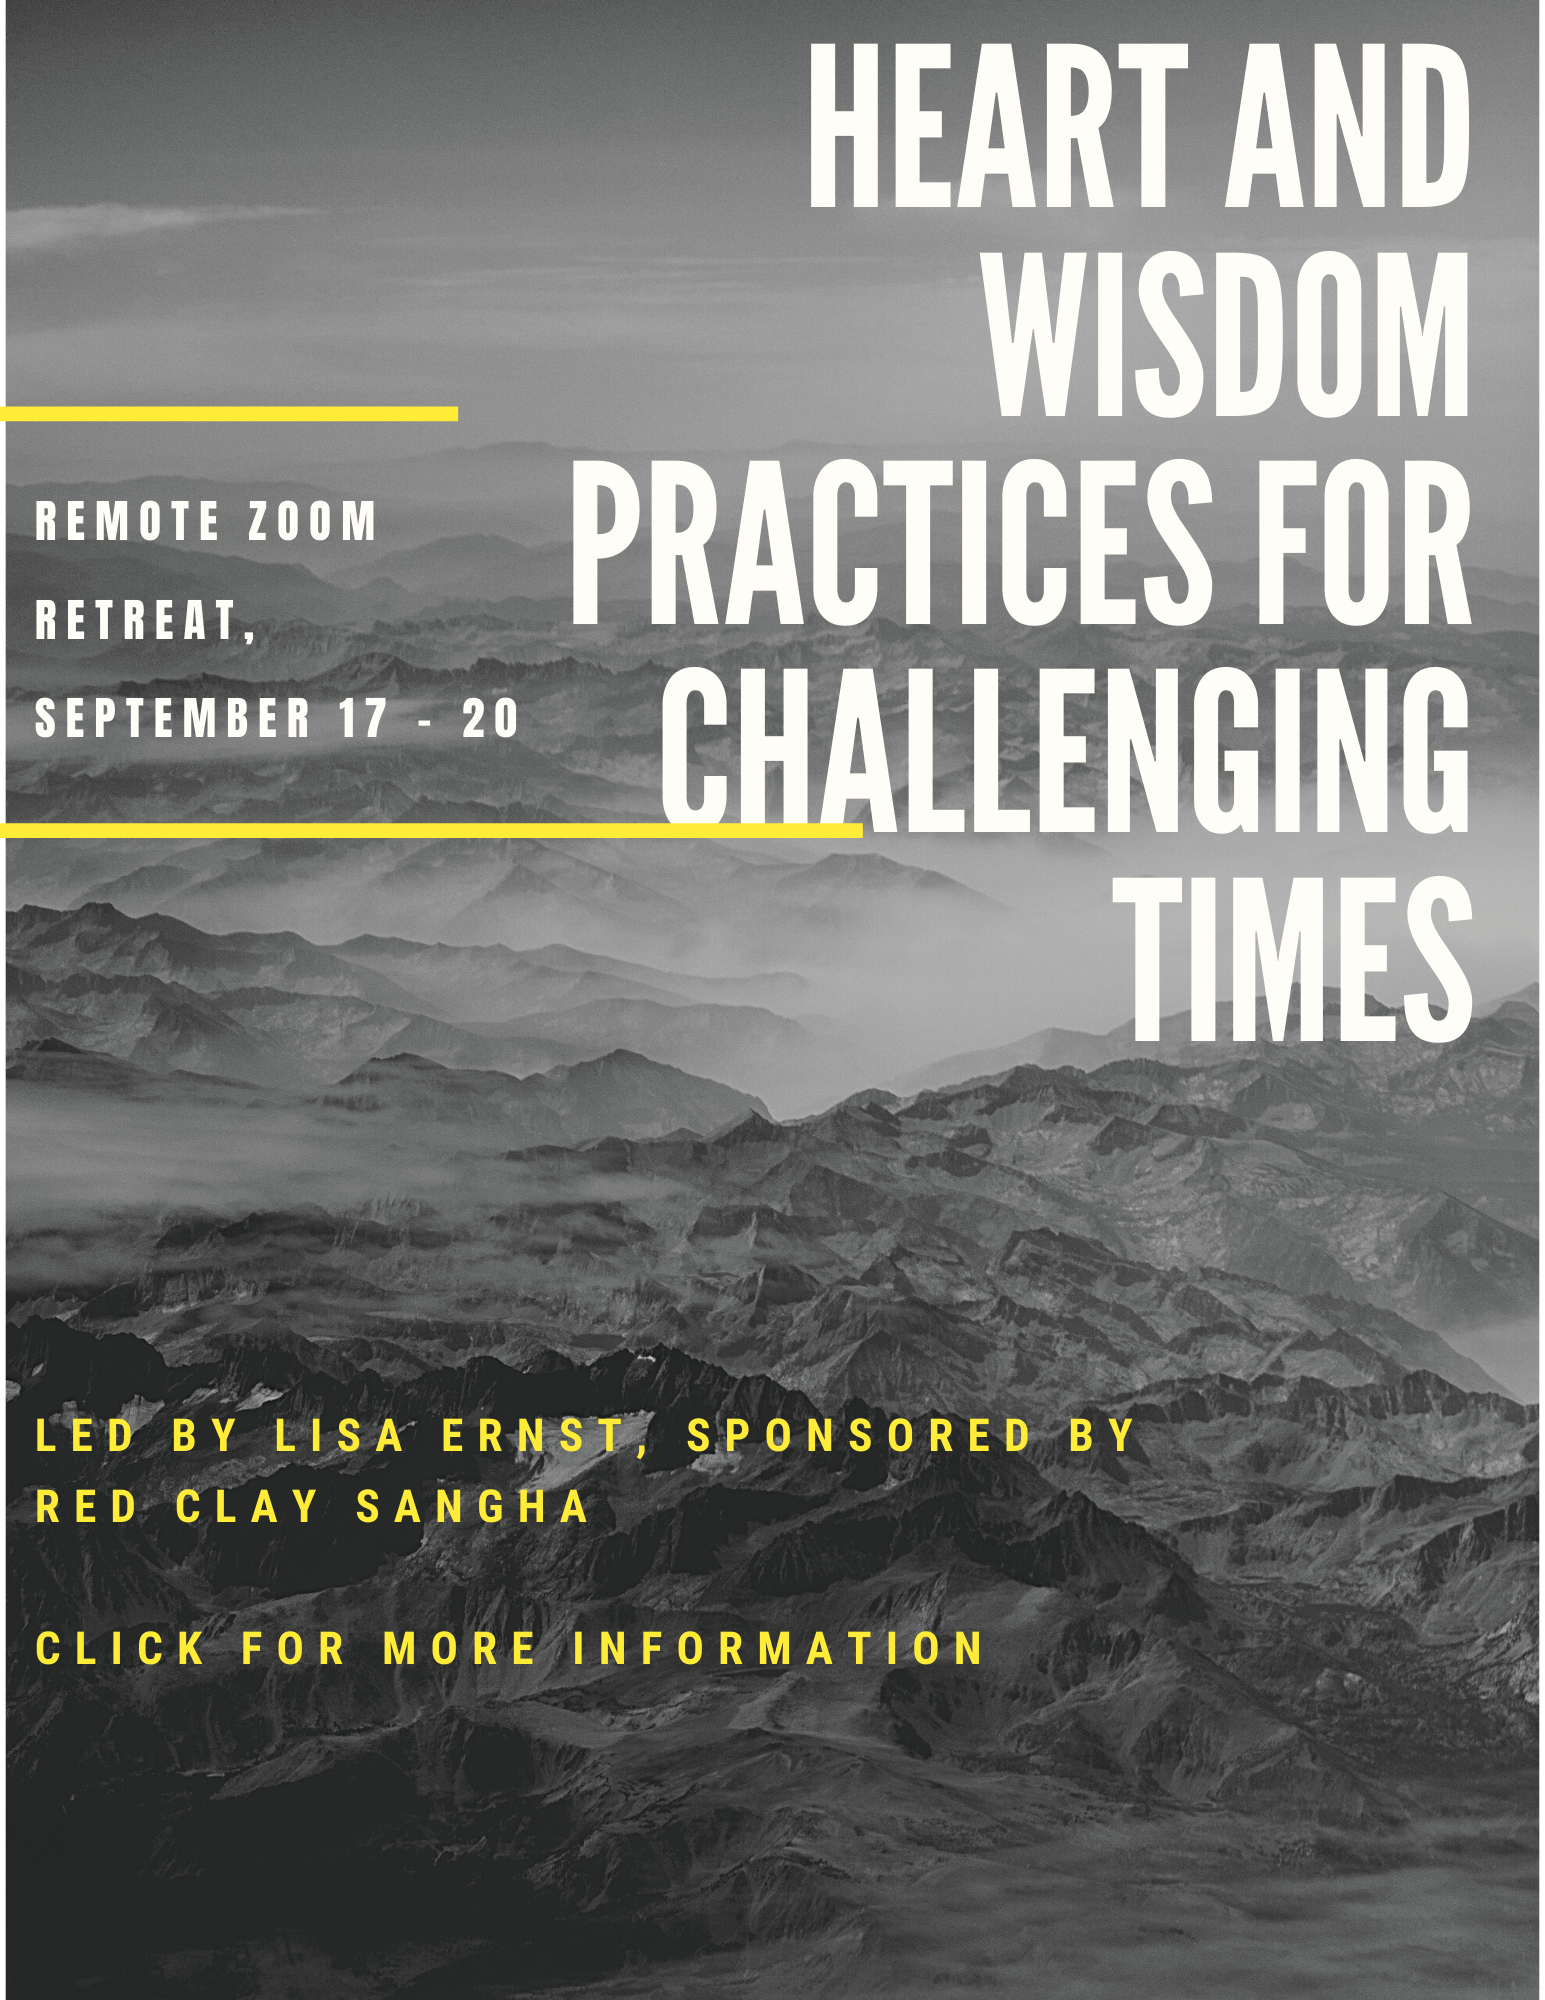 Heart and Wisdom Practices for Challenging Times(1)